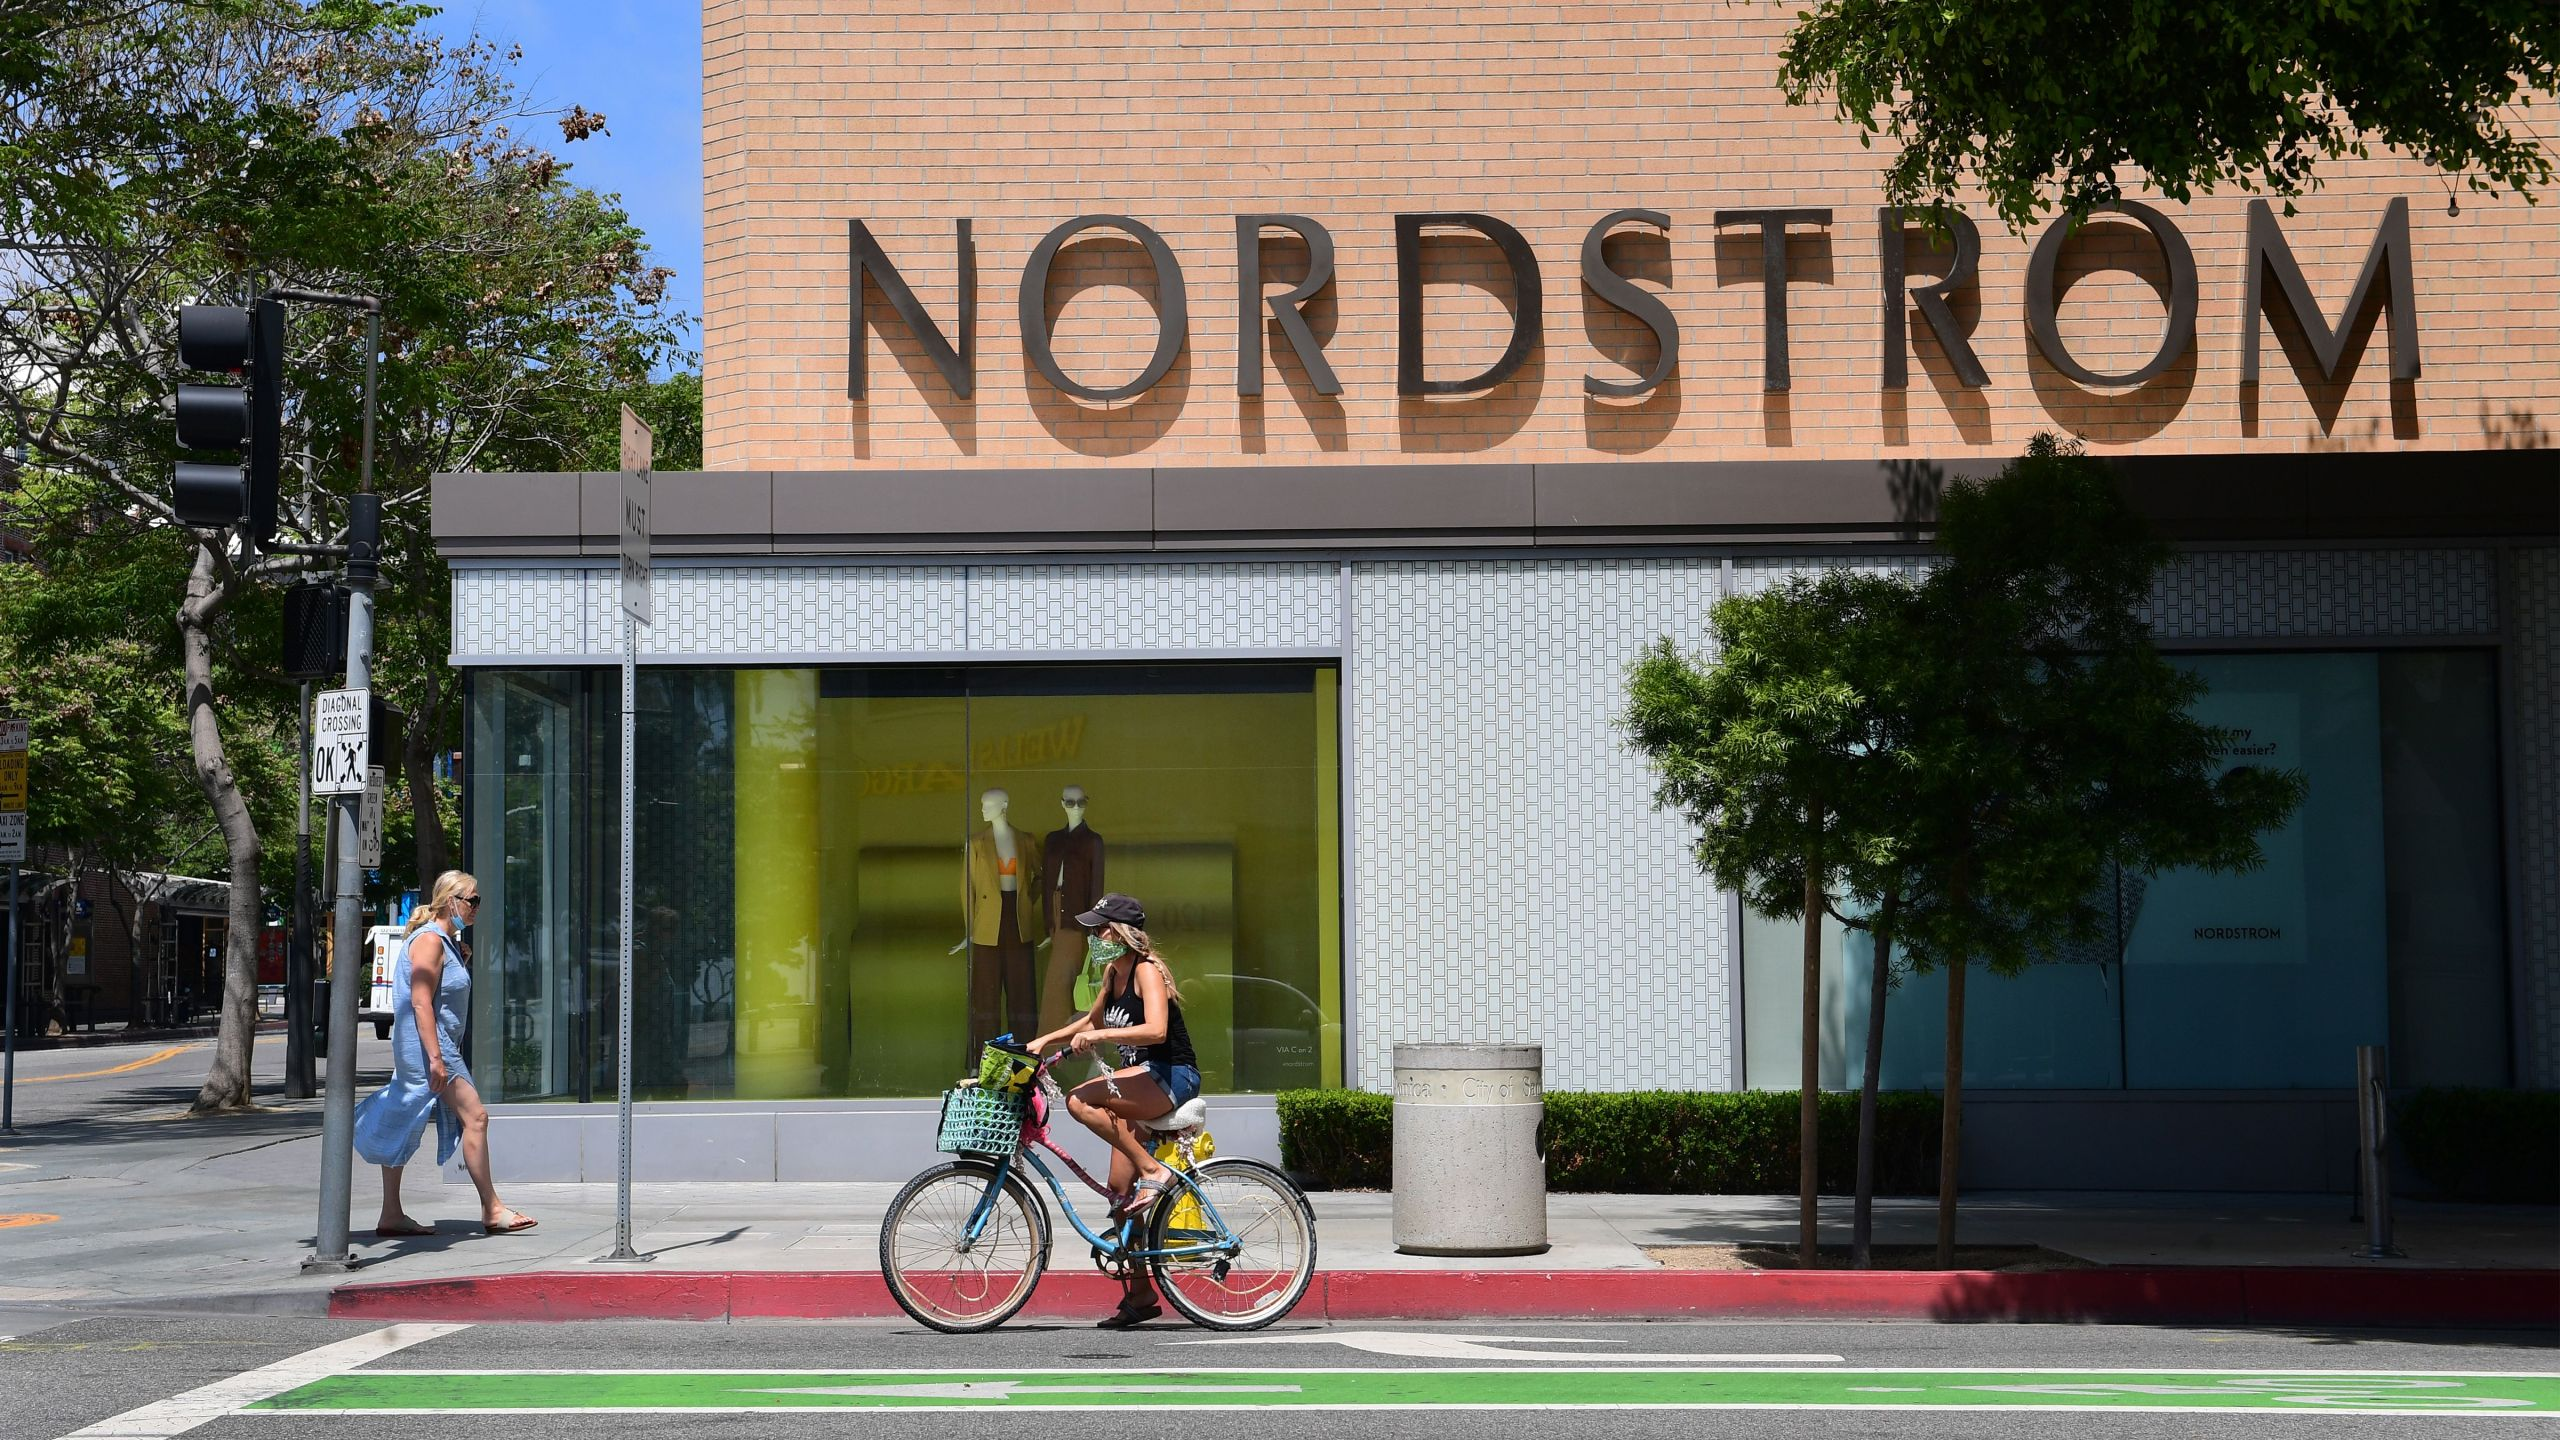 A pedestrian and cyclist wear face masks outside a branch of department store chain Nordstrom in Santa Monica on May 11, 2020. (FREDERIC J. BROWN/AFP via Getty Images)